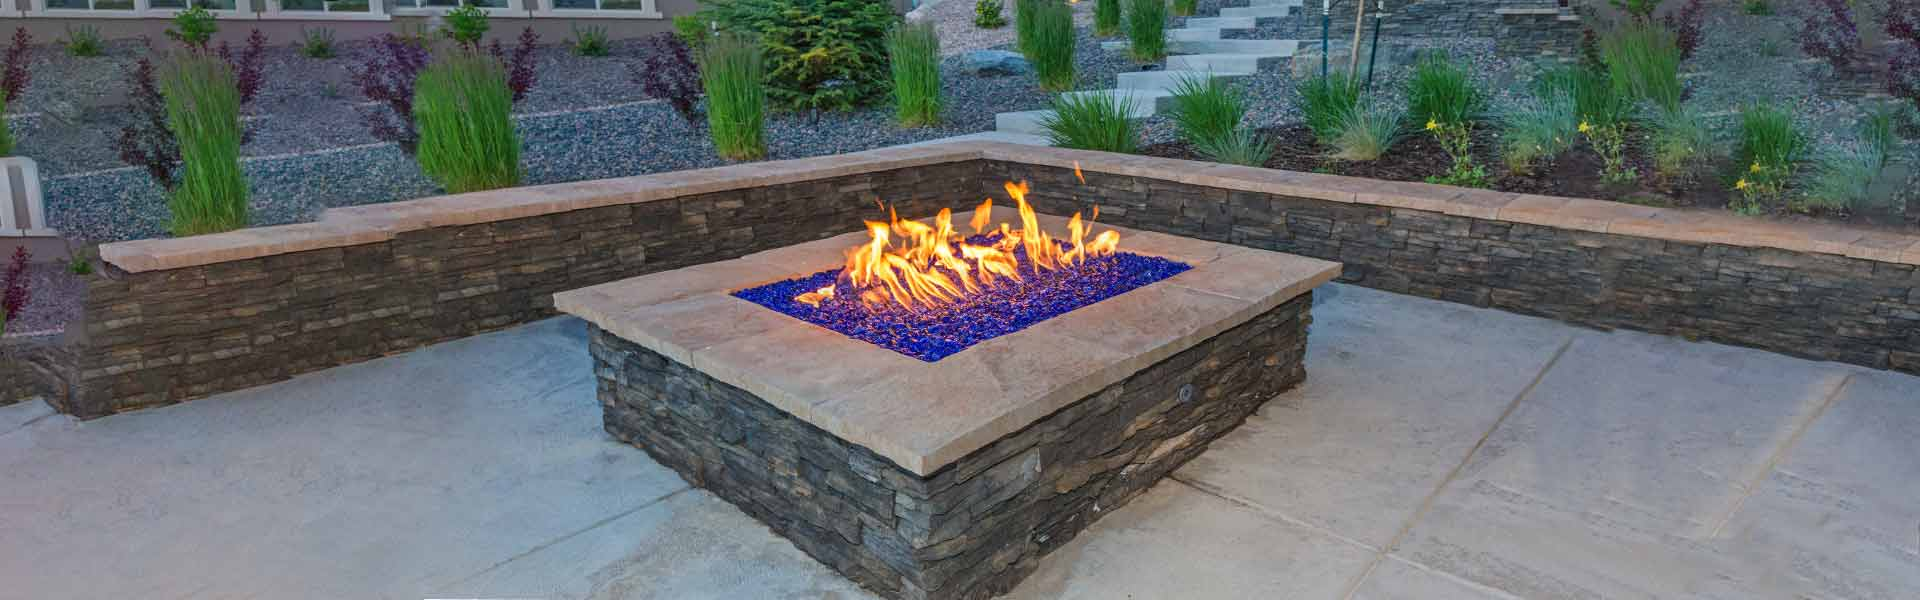 Stunning blue glass chippings in outdoor garden fire pit.